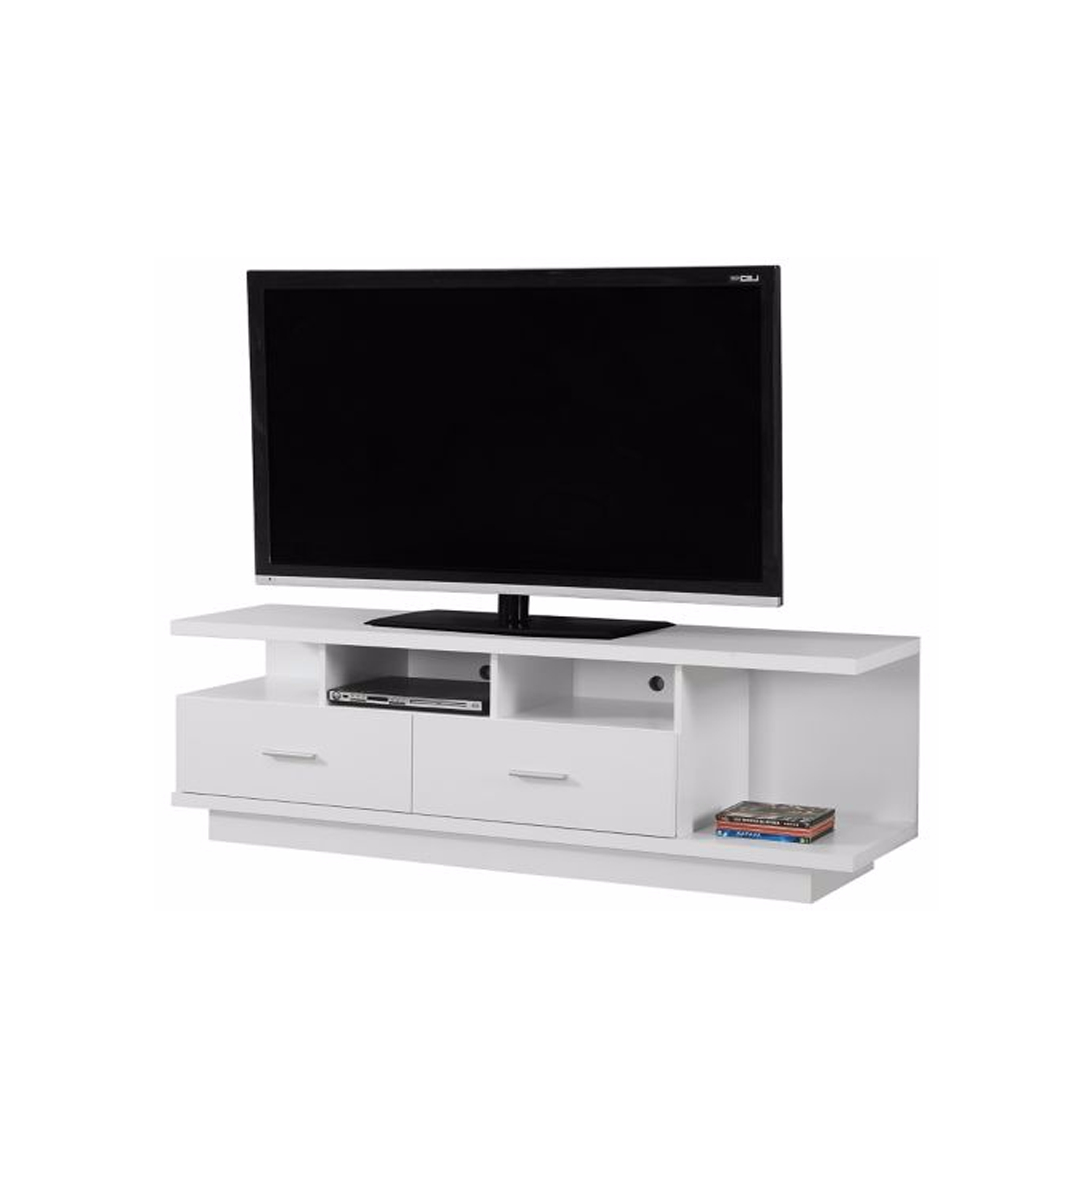 Best And Newest Aprodz Mango Wood Cordoba Tv Stand Cabinet For Home (View 3 of 20)